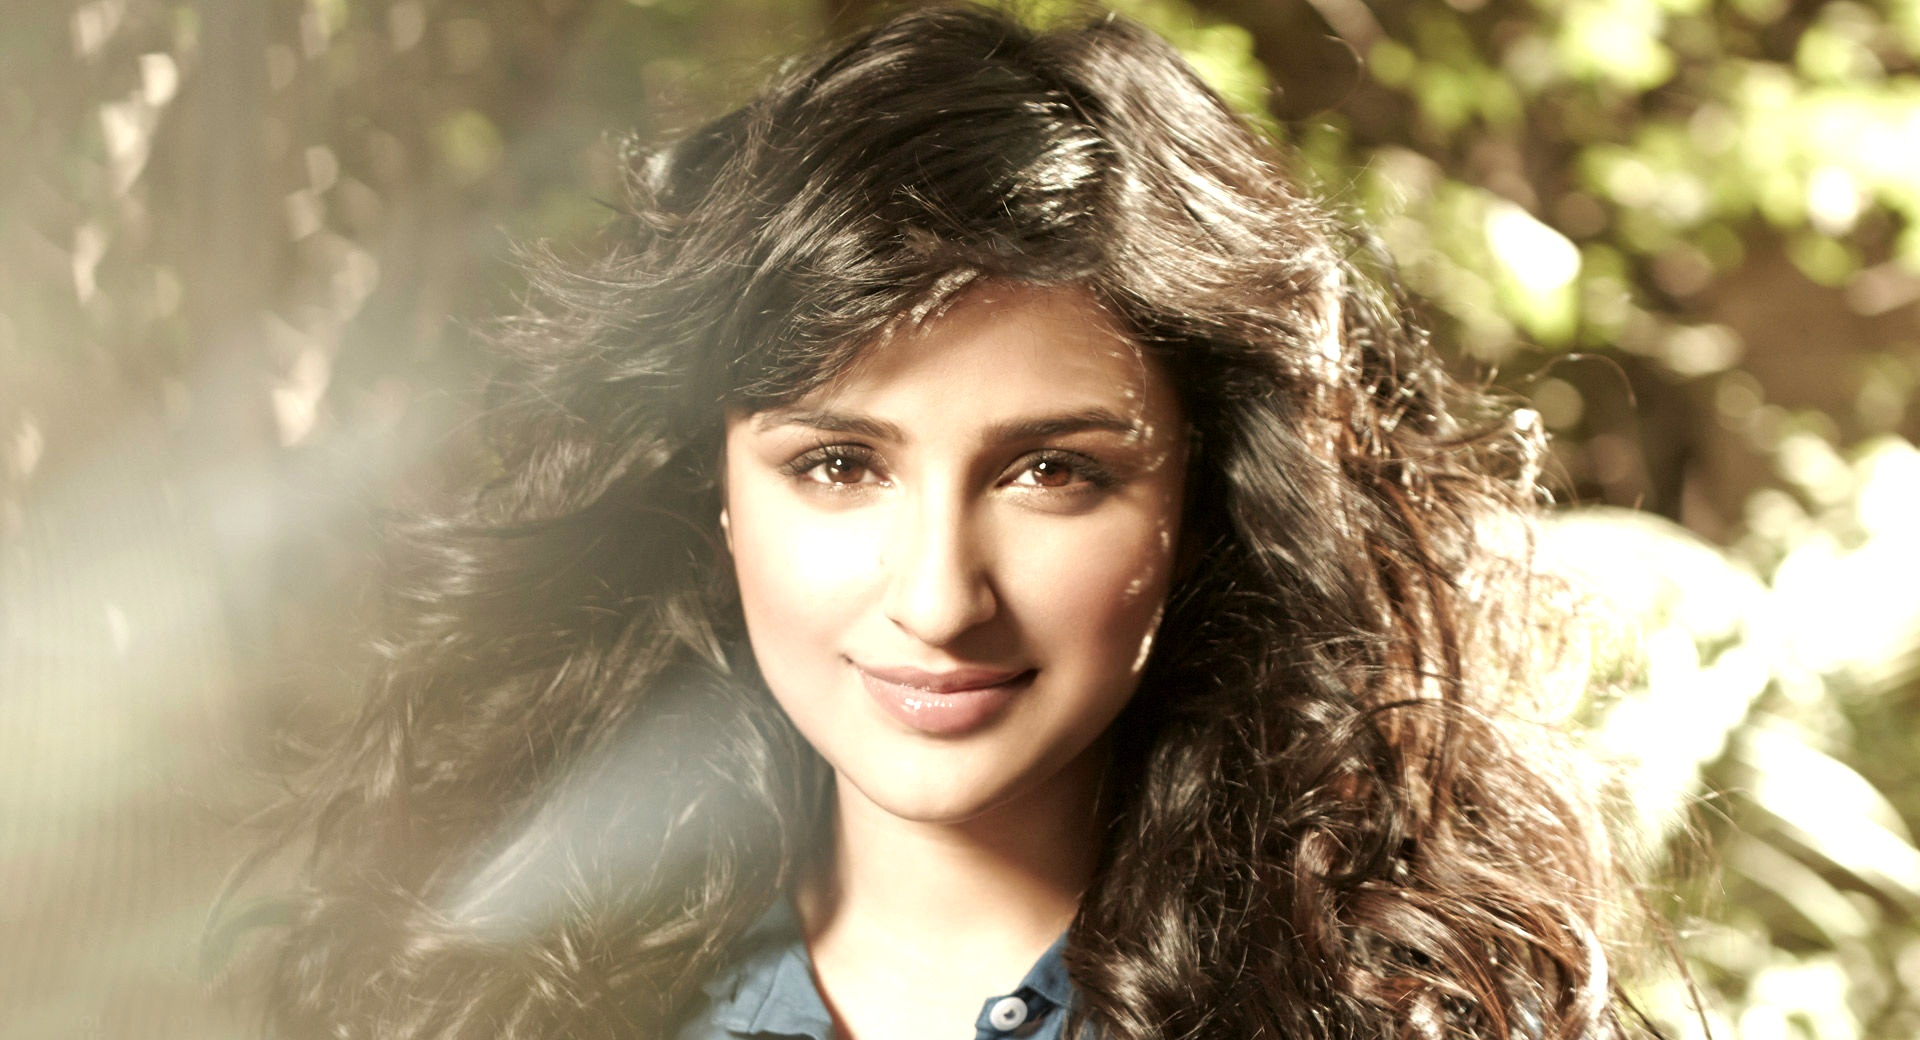 hd parineeti chopra beauty eye look desktop background free pictures mobile